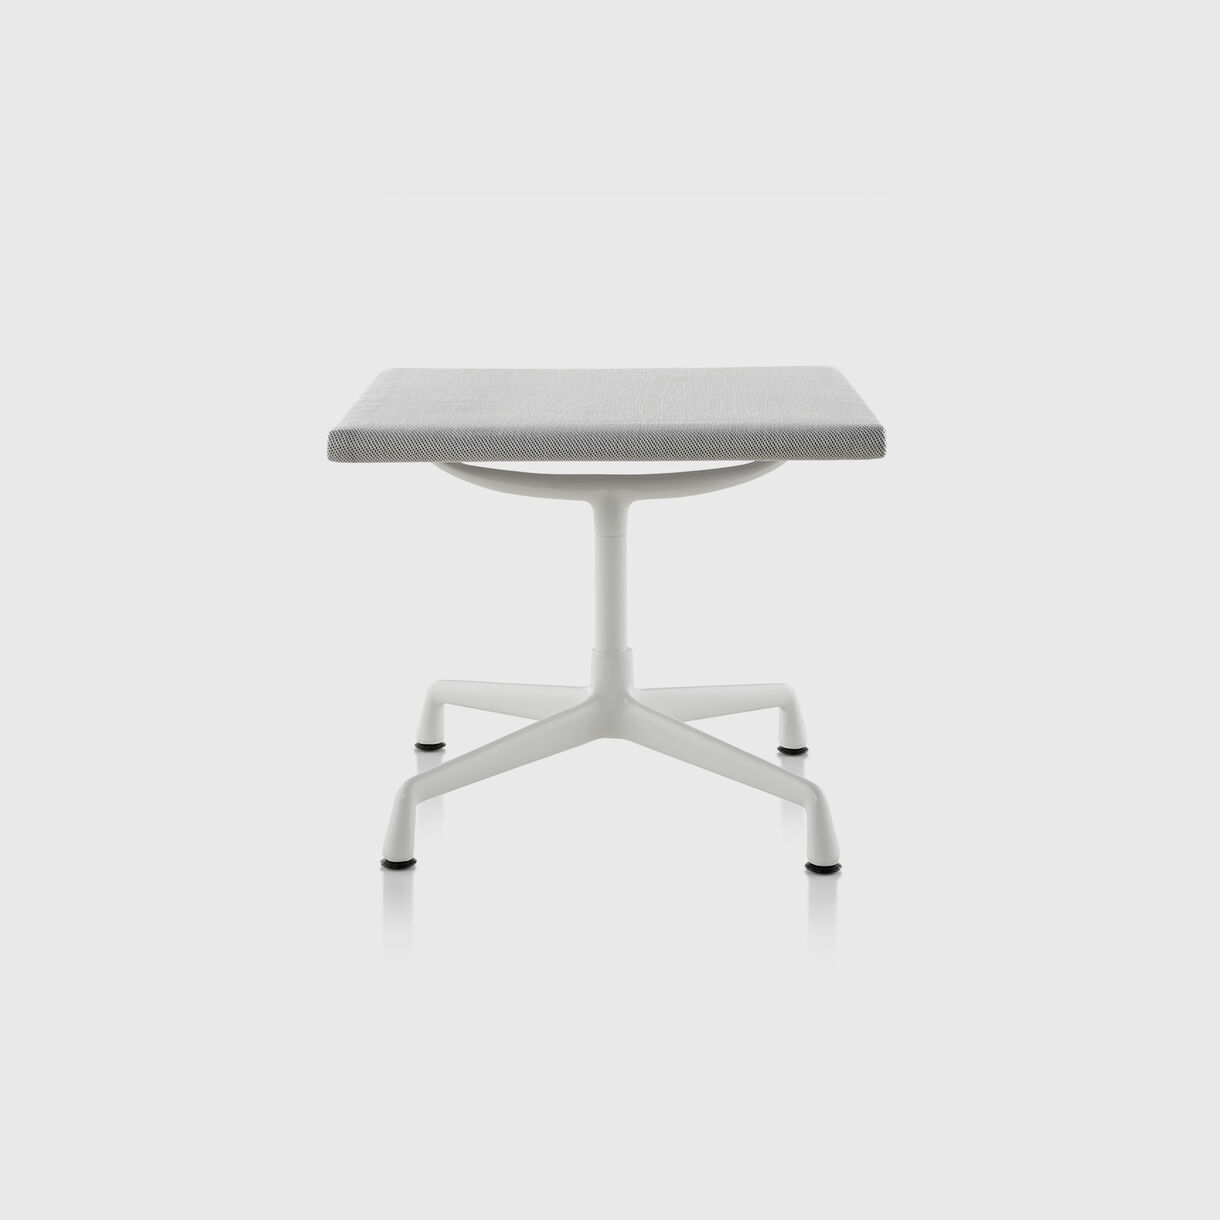 Eames Aluminium Group Ottoman, Outdoor